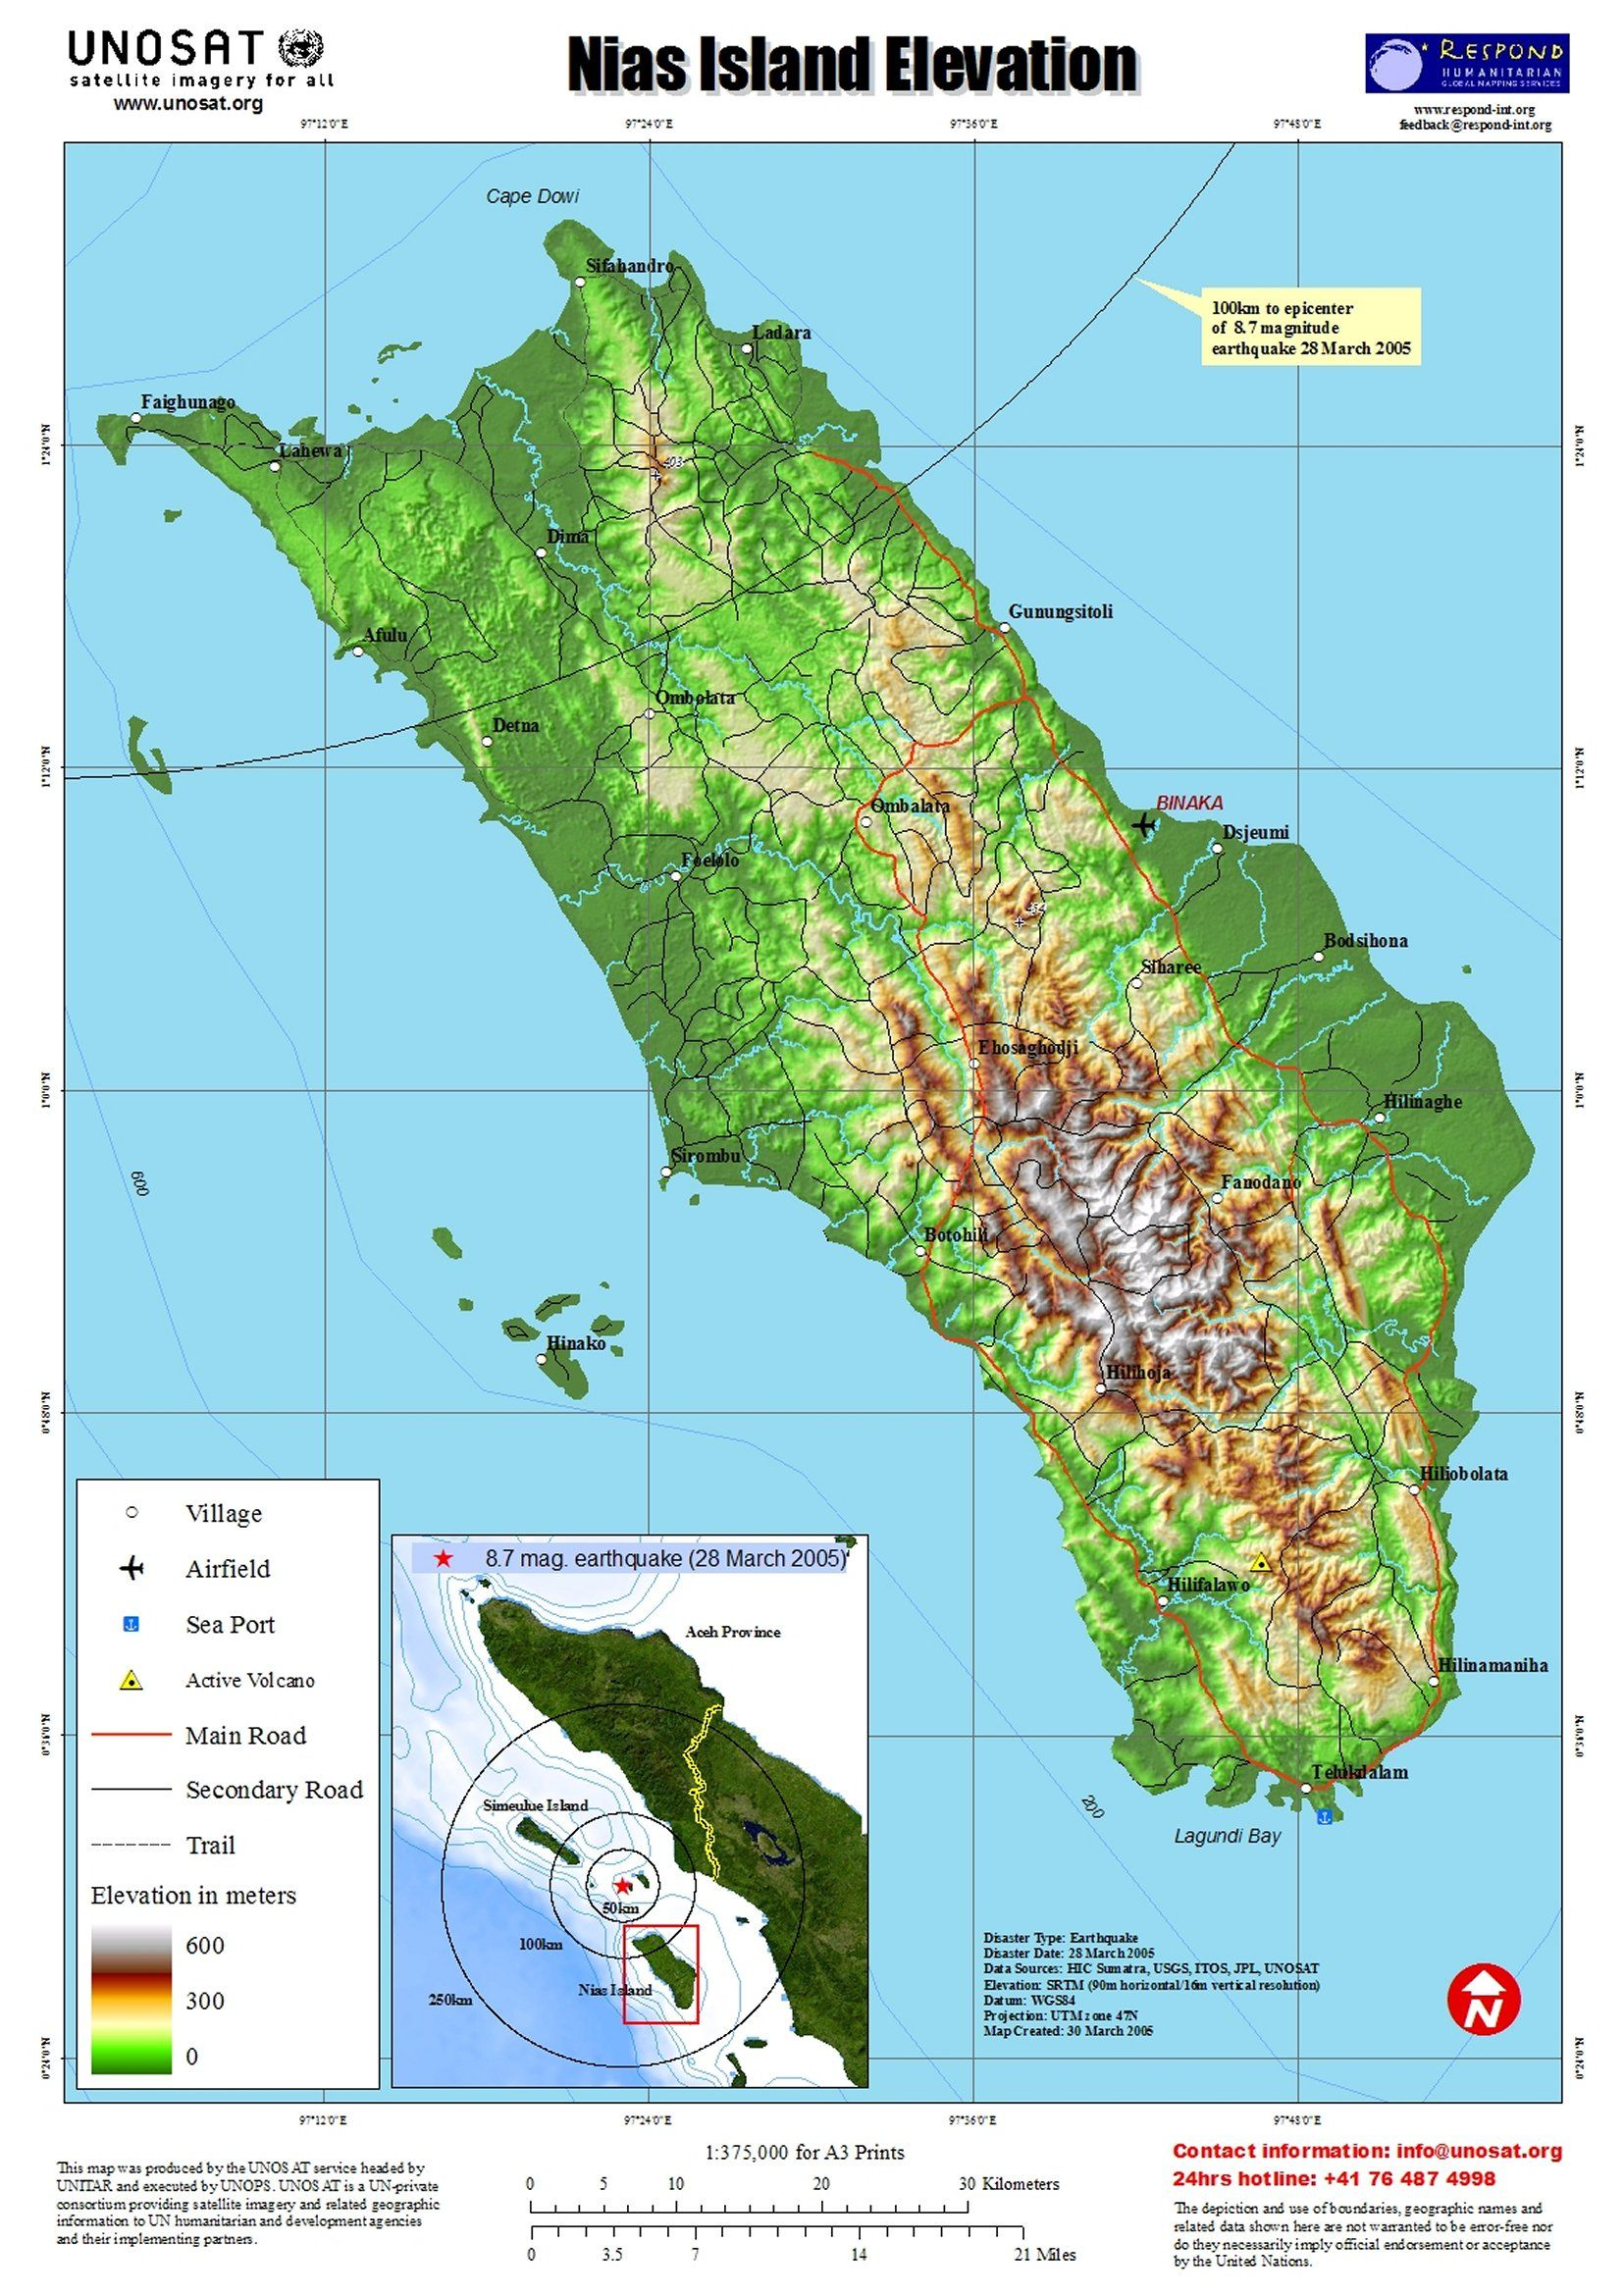 Nias Island Elevation and Earthquake Map See map details From alertnet ...